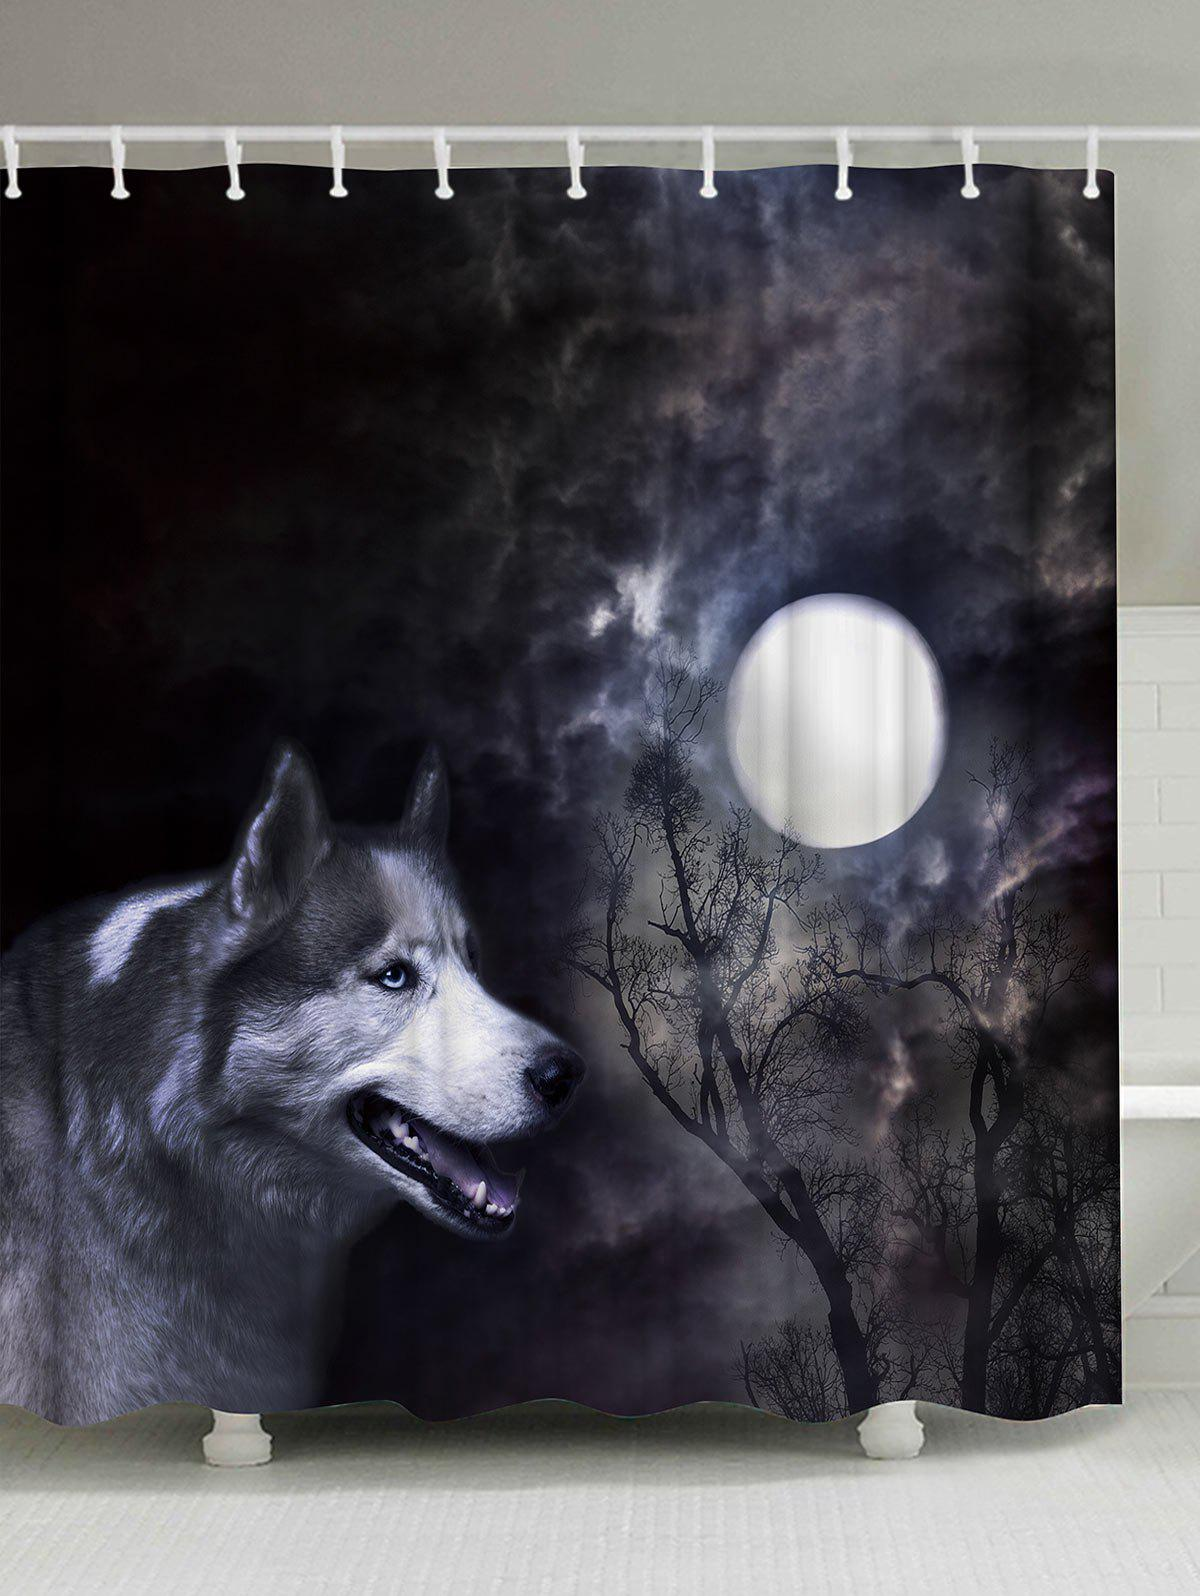 Moonlight Wolf Fabric Shower Curtain with Hooks waterproof polyester fabric shower curtain with hooks